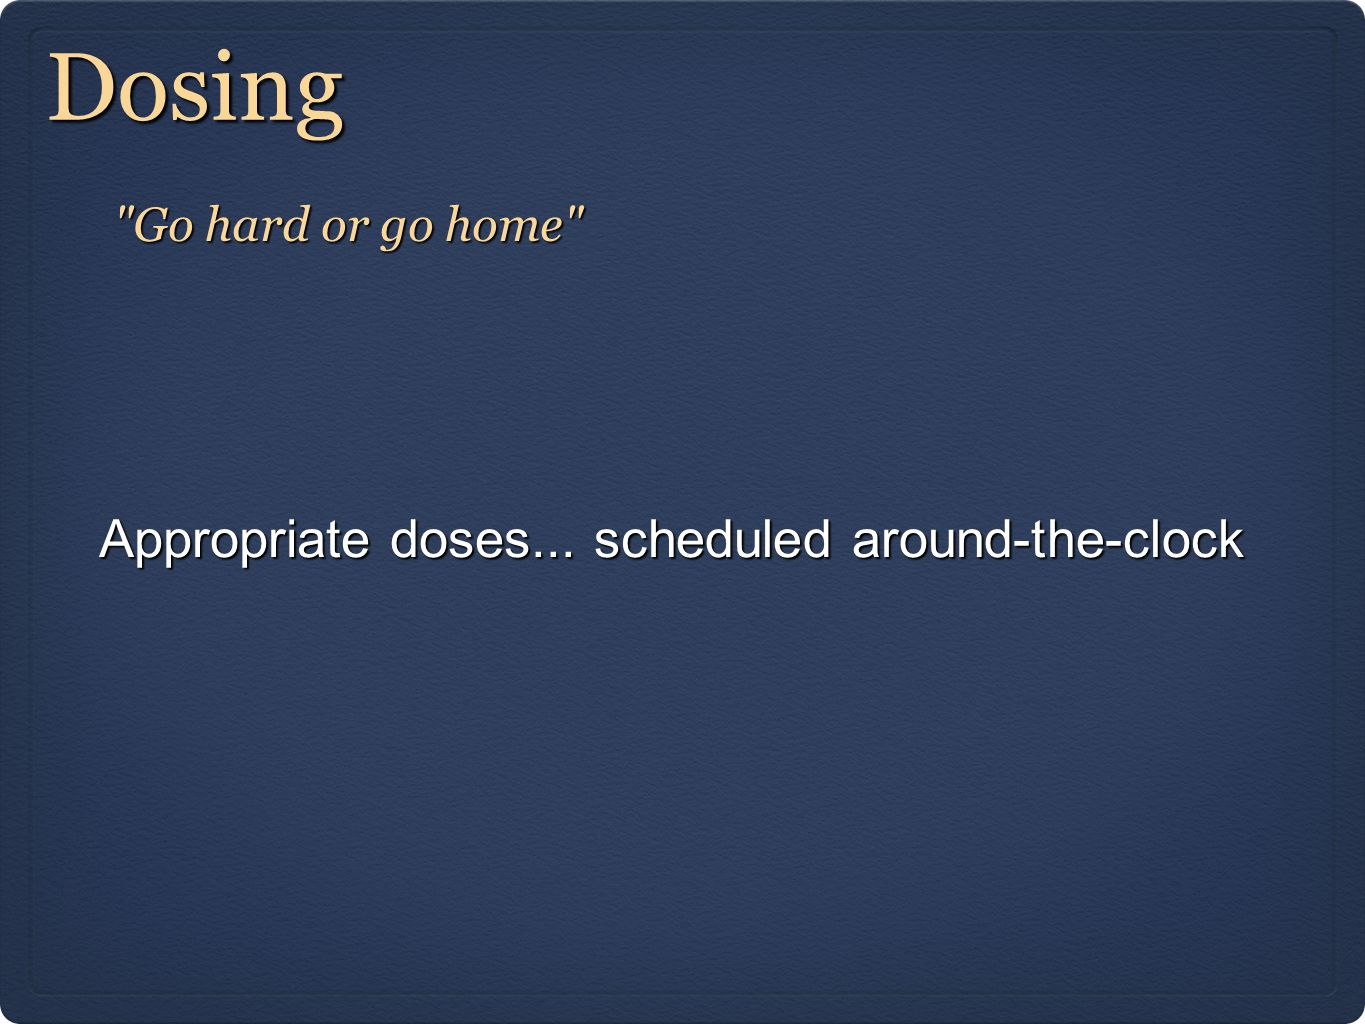 Dosing Appropriate doses... scheduled around-the-clock